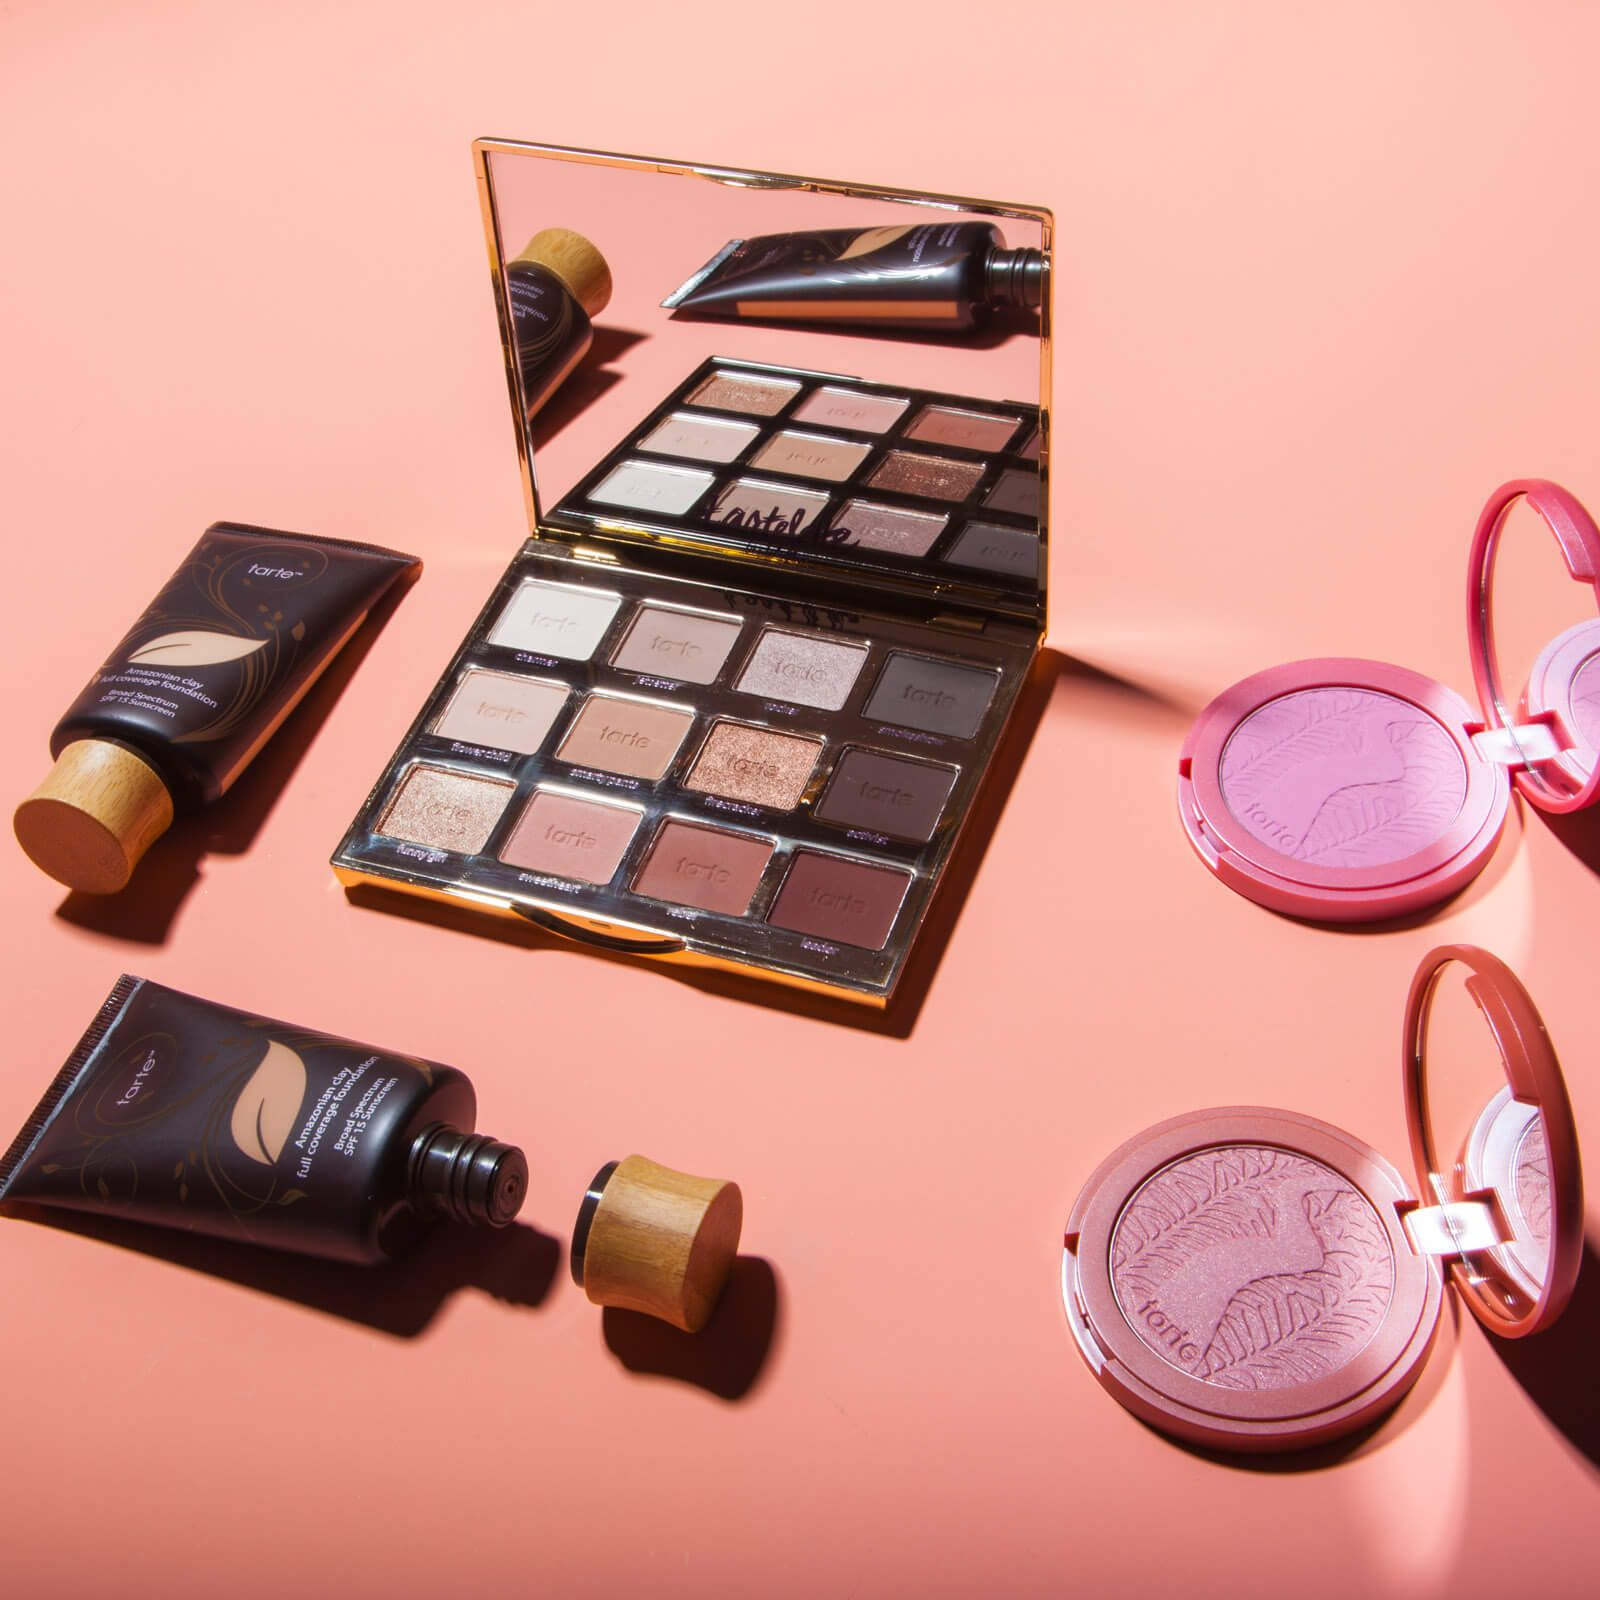 10 Best Vegan Makeup Brands for CrueltyFree